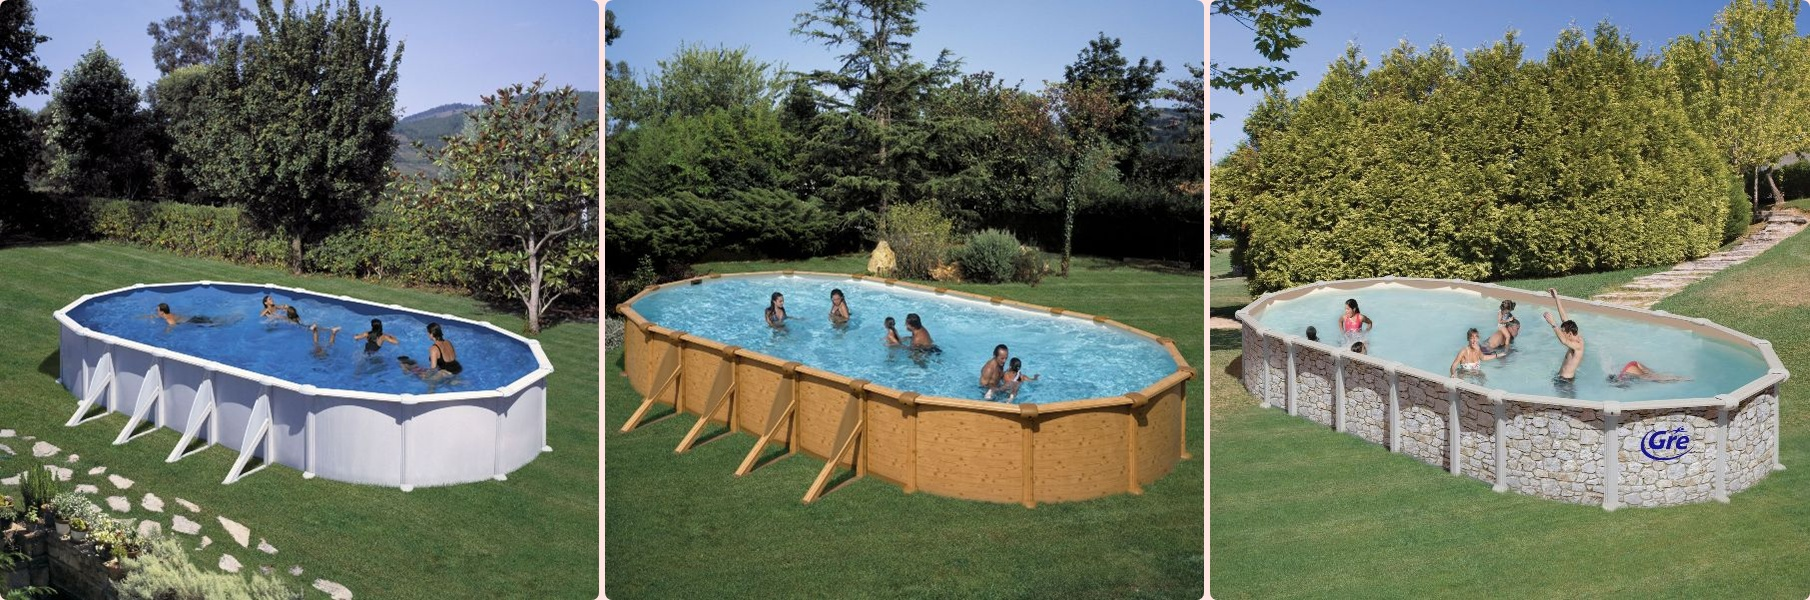 Piscine demontable acheter piscine d montable for Piscine enterree prix